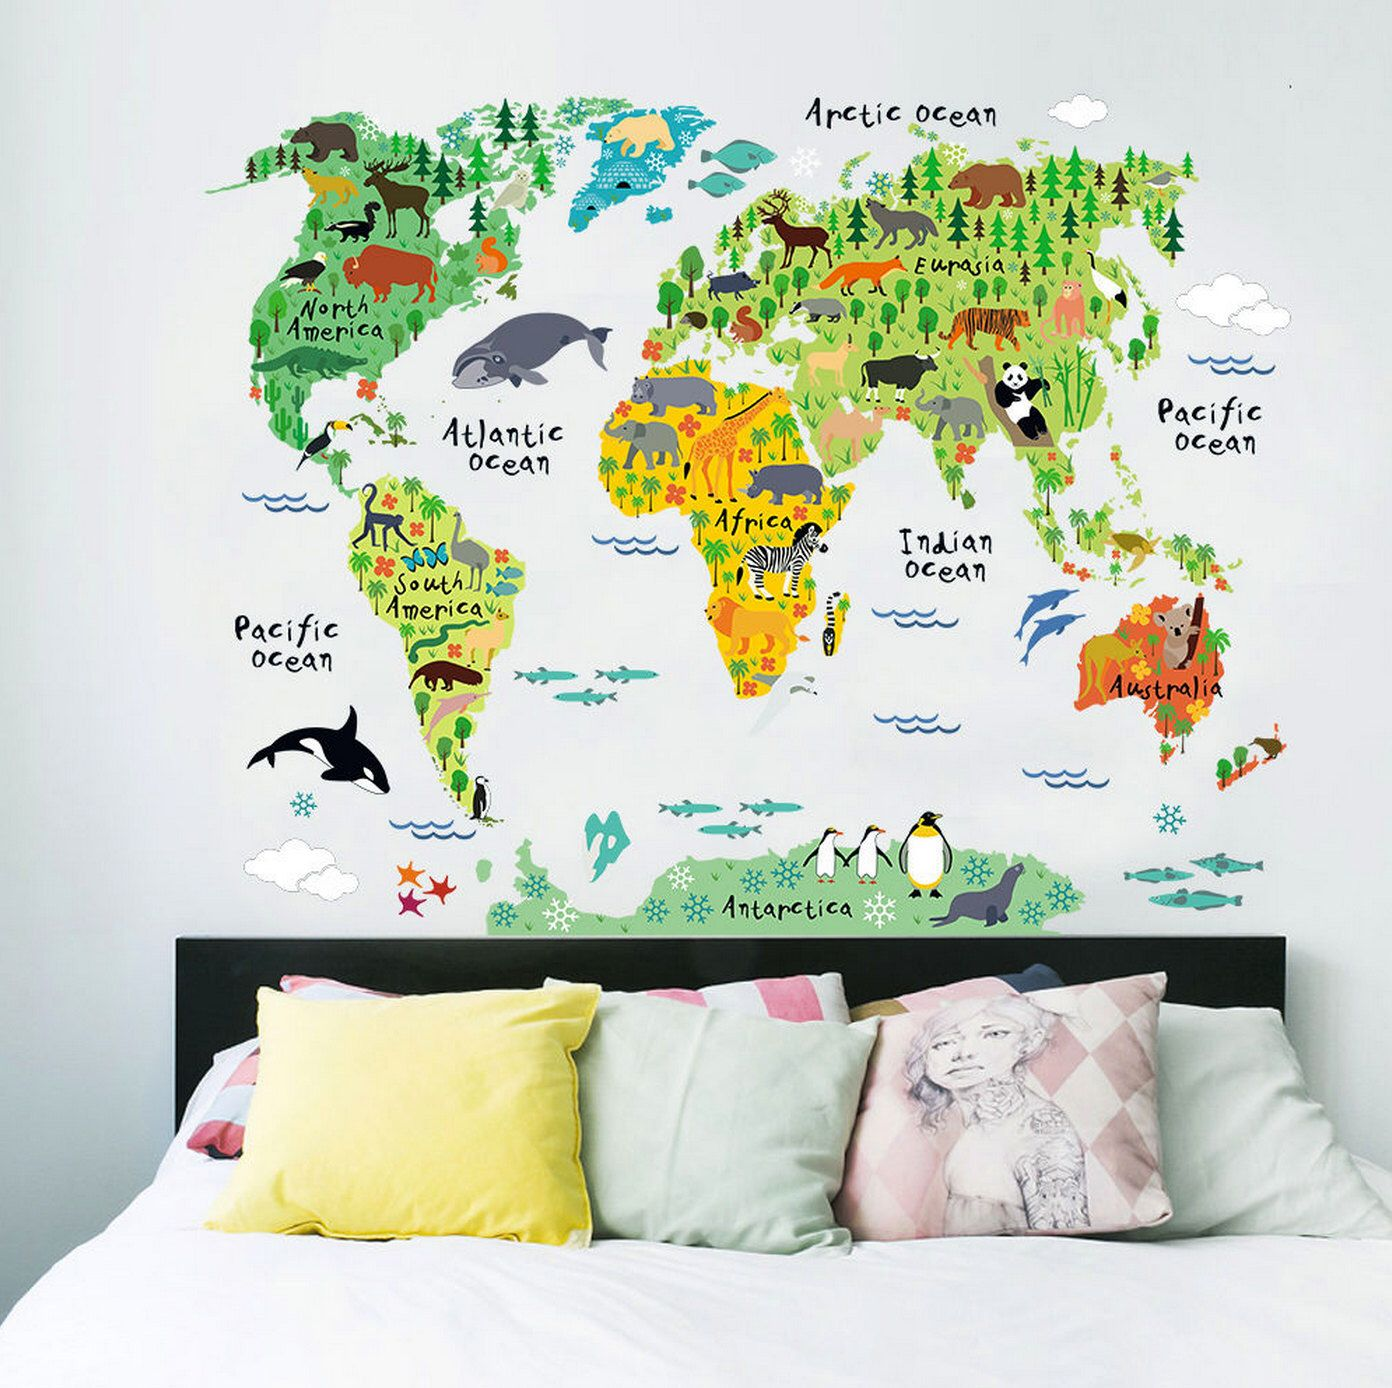 Huge 4 x 4 kids world map wall stickersdecals educational wall huge 4 x 4 kids world map wall stickersdecals educational wall decal kids wall decals world map wall decal map wall art map print by gumiabroncs Gallery